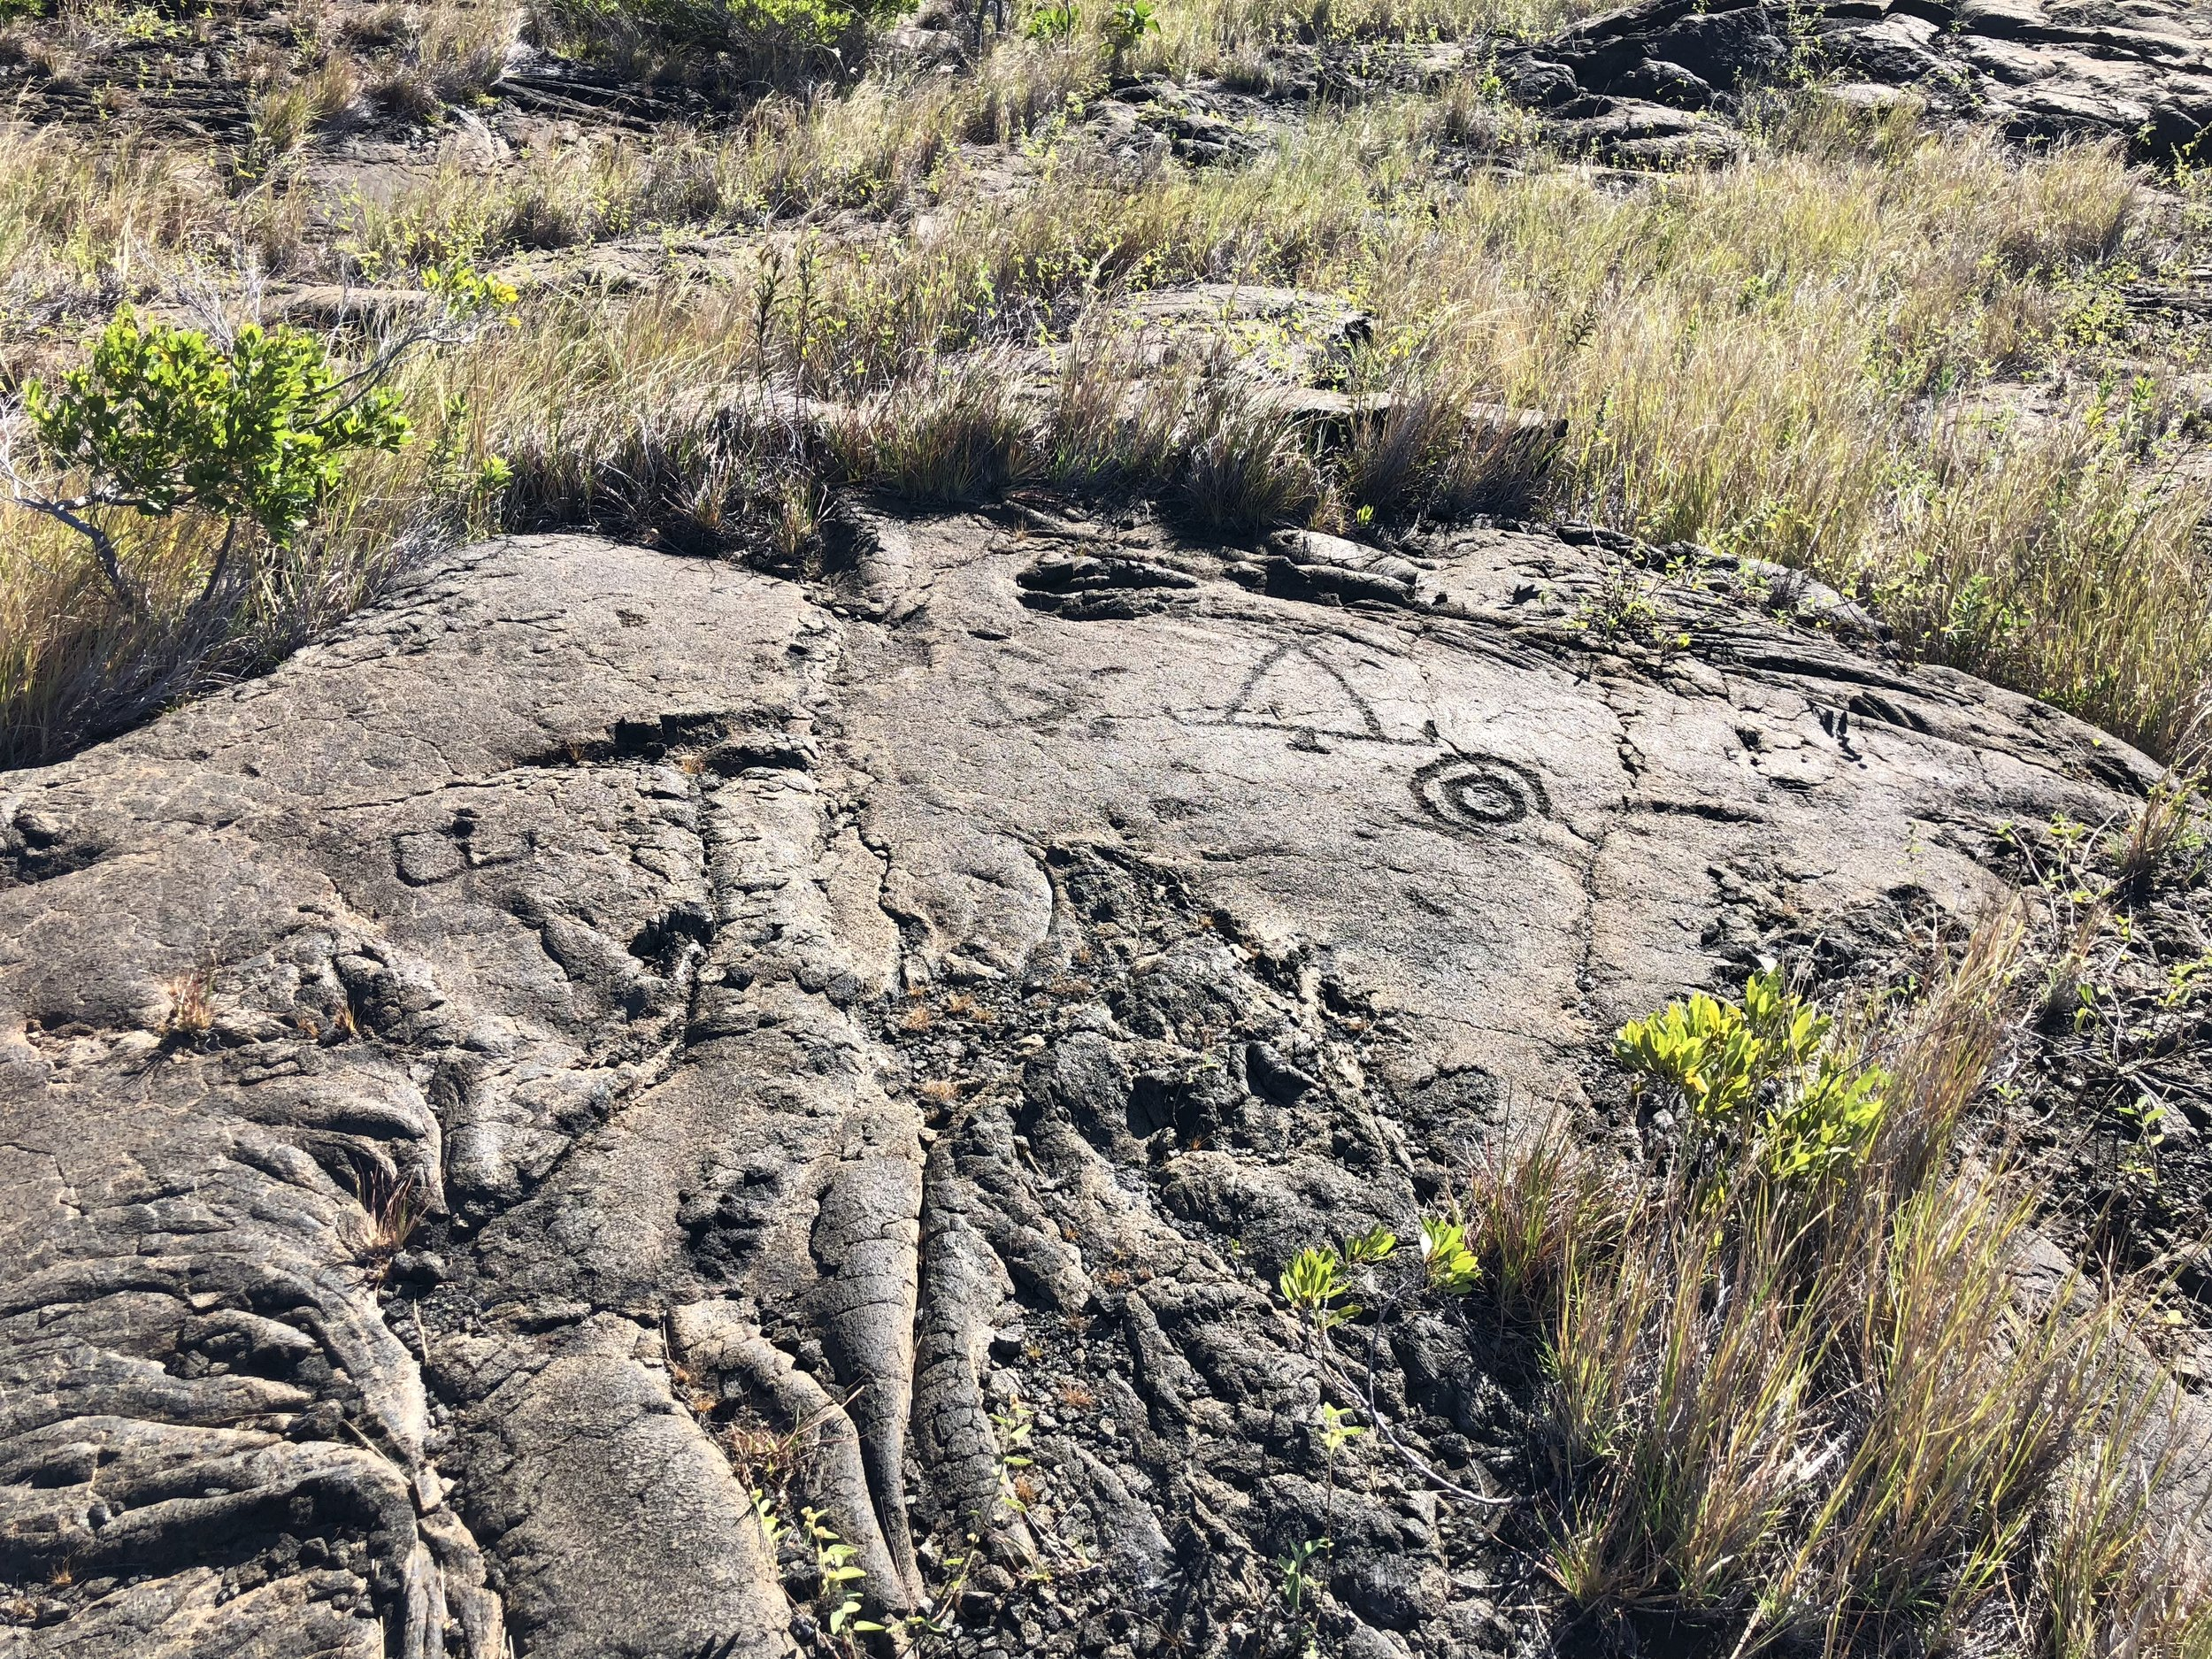 Or you could always try petroglyphs.